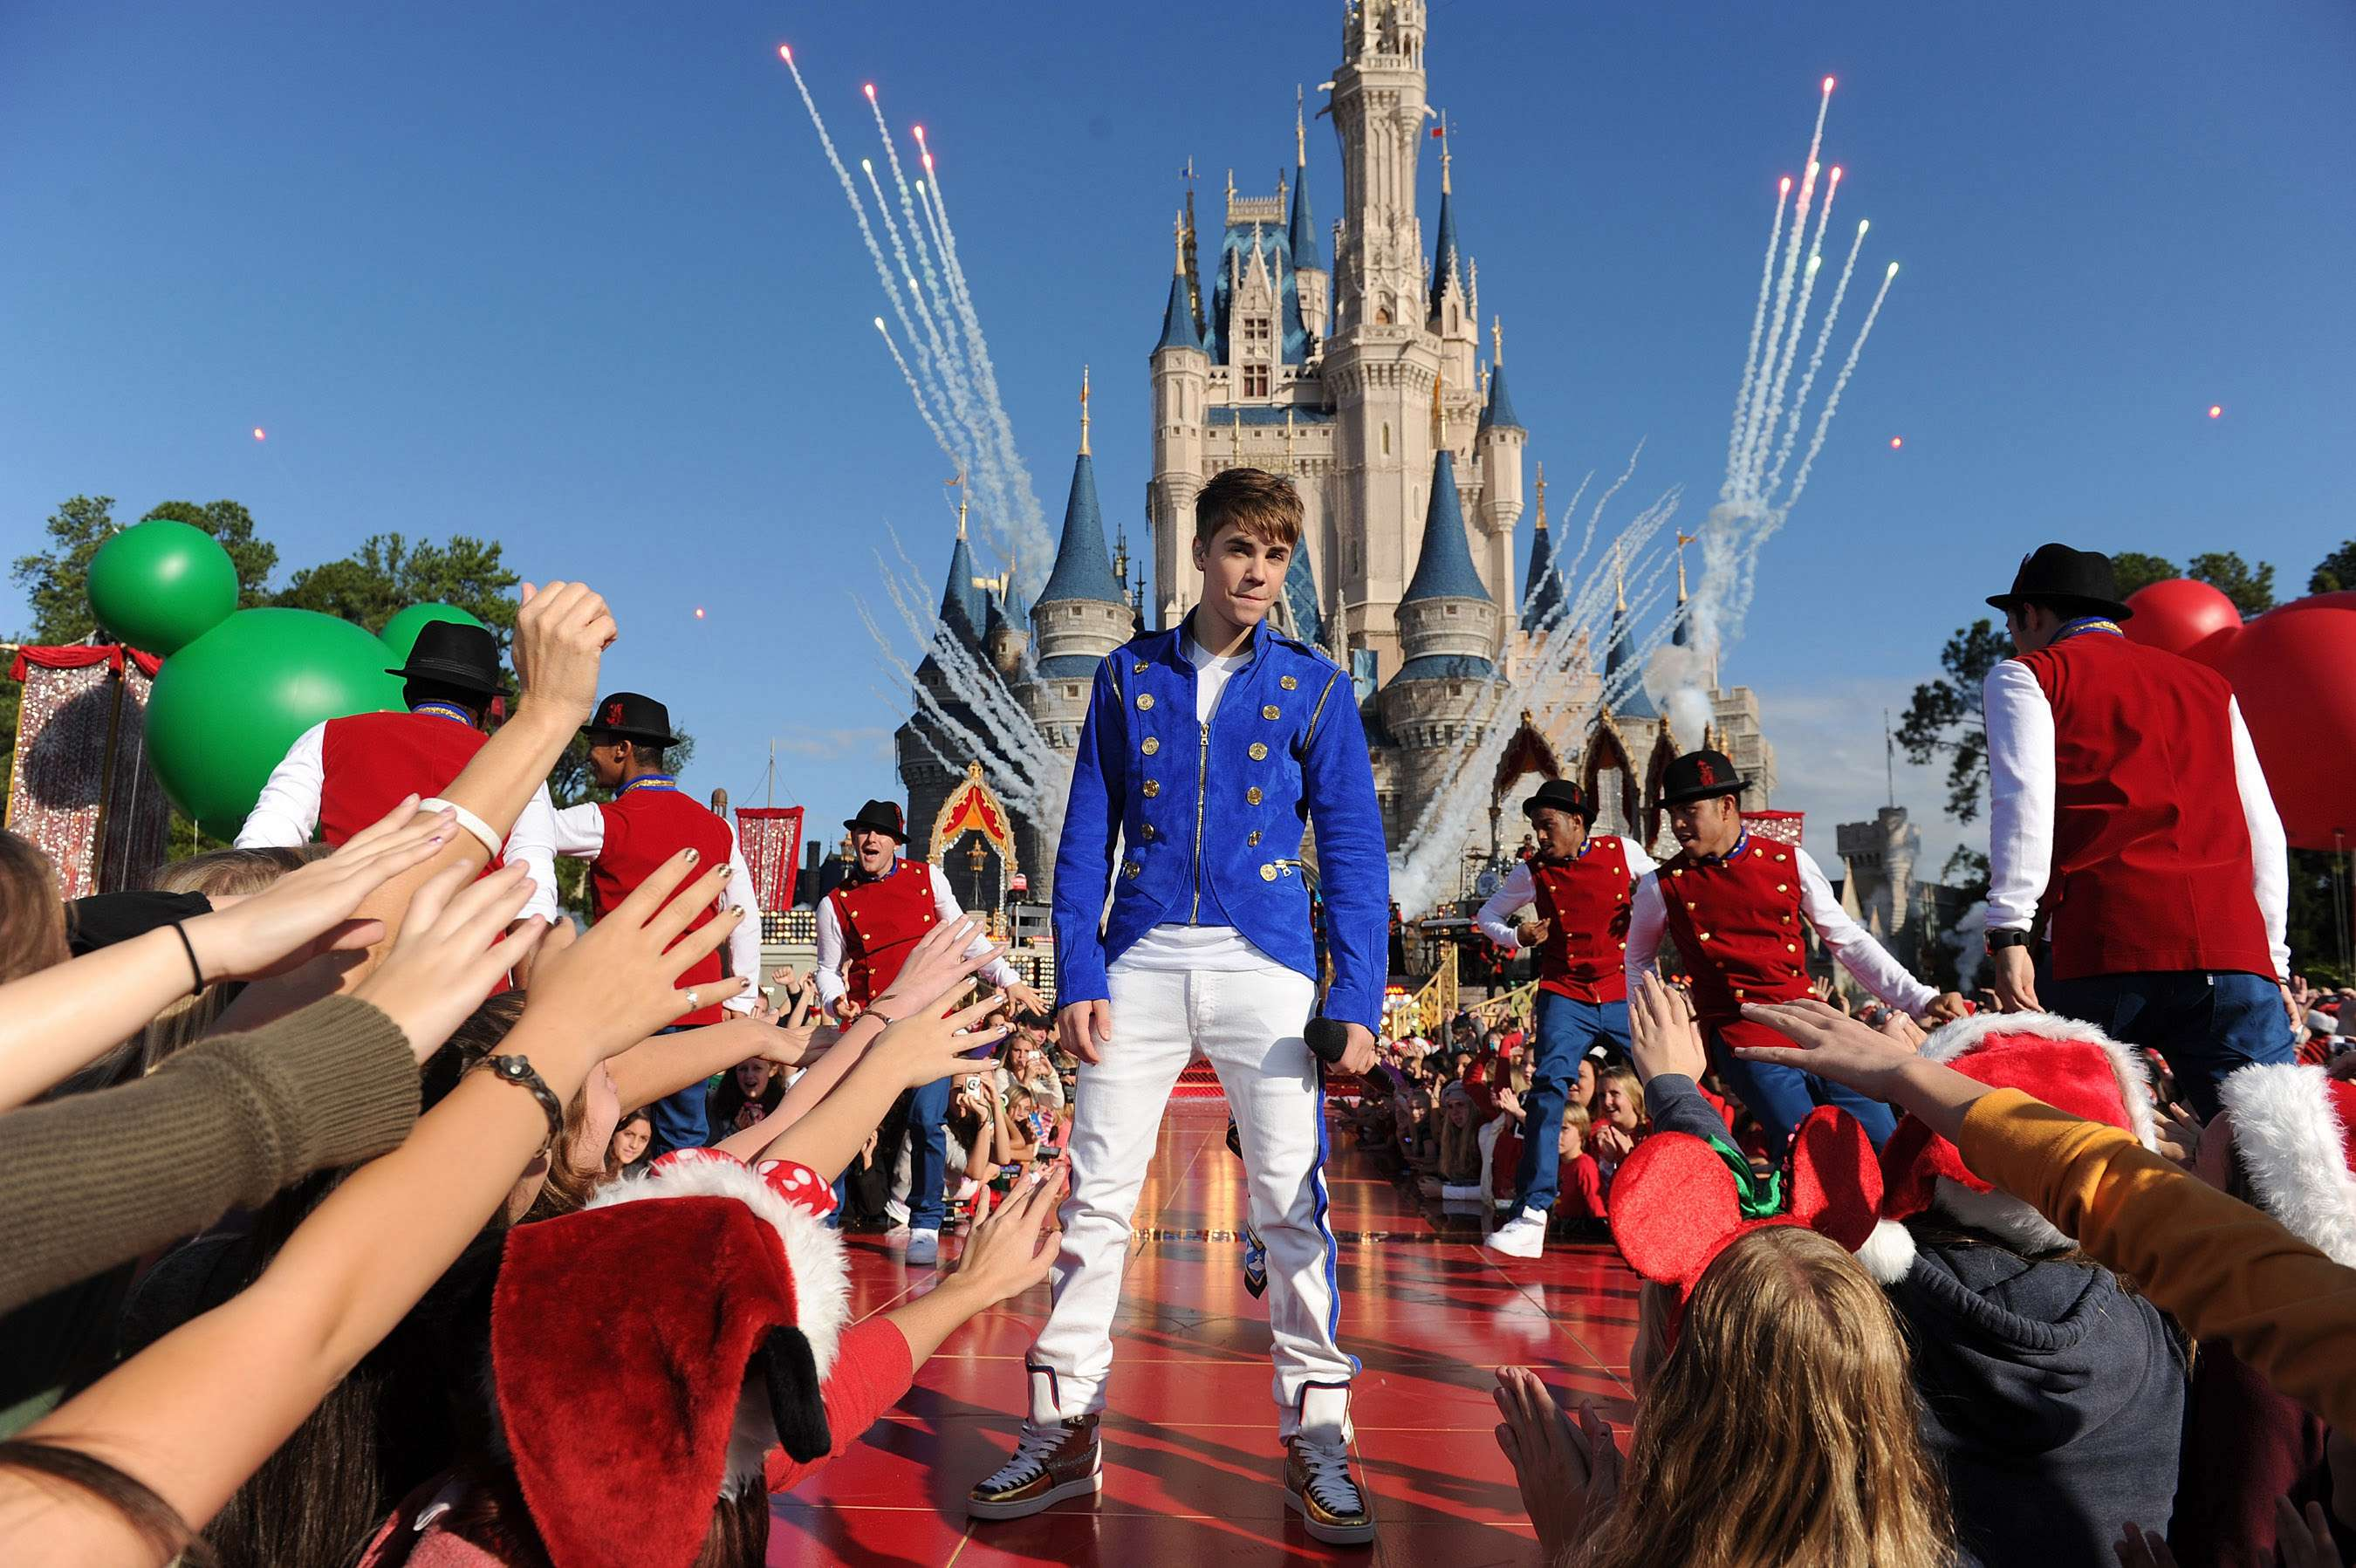 Justin Bieber sacó un álbum navideño llamado 'Under The Mistletoe'. Foto: Getty Images